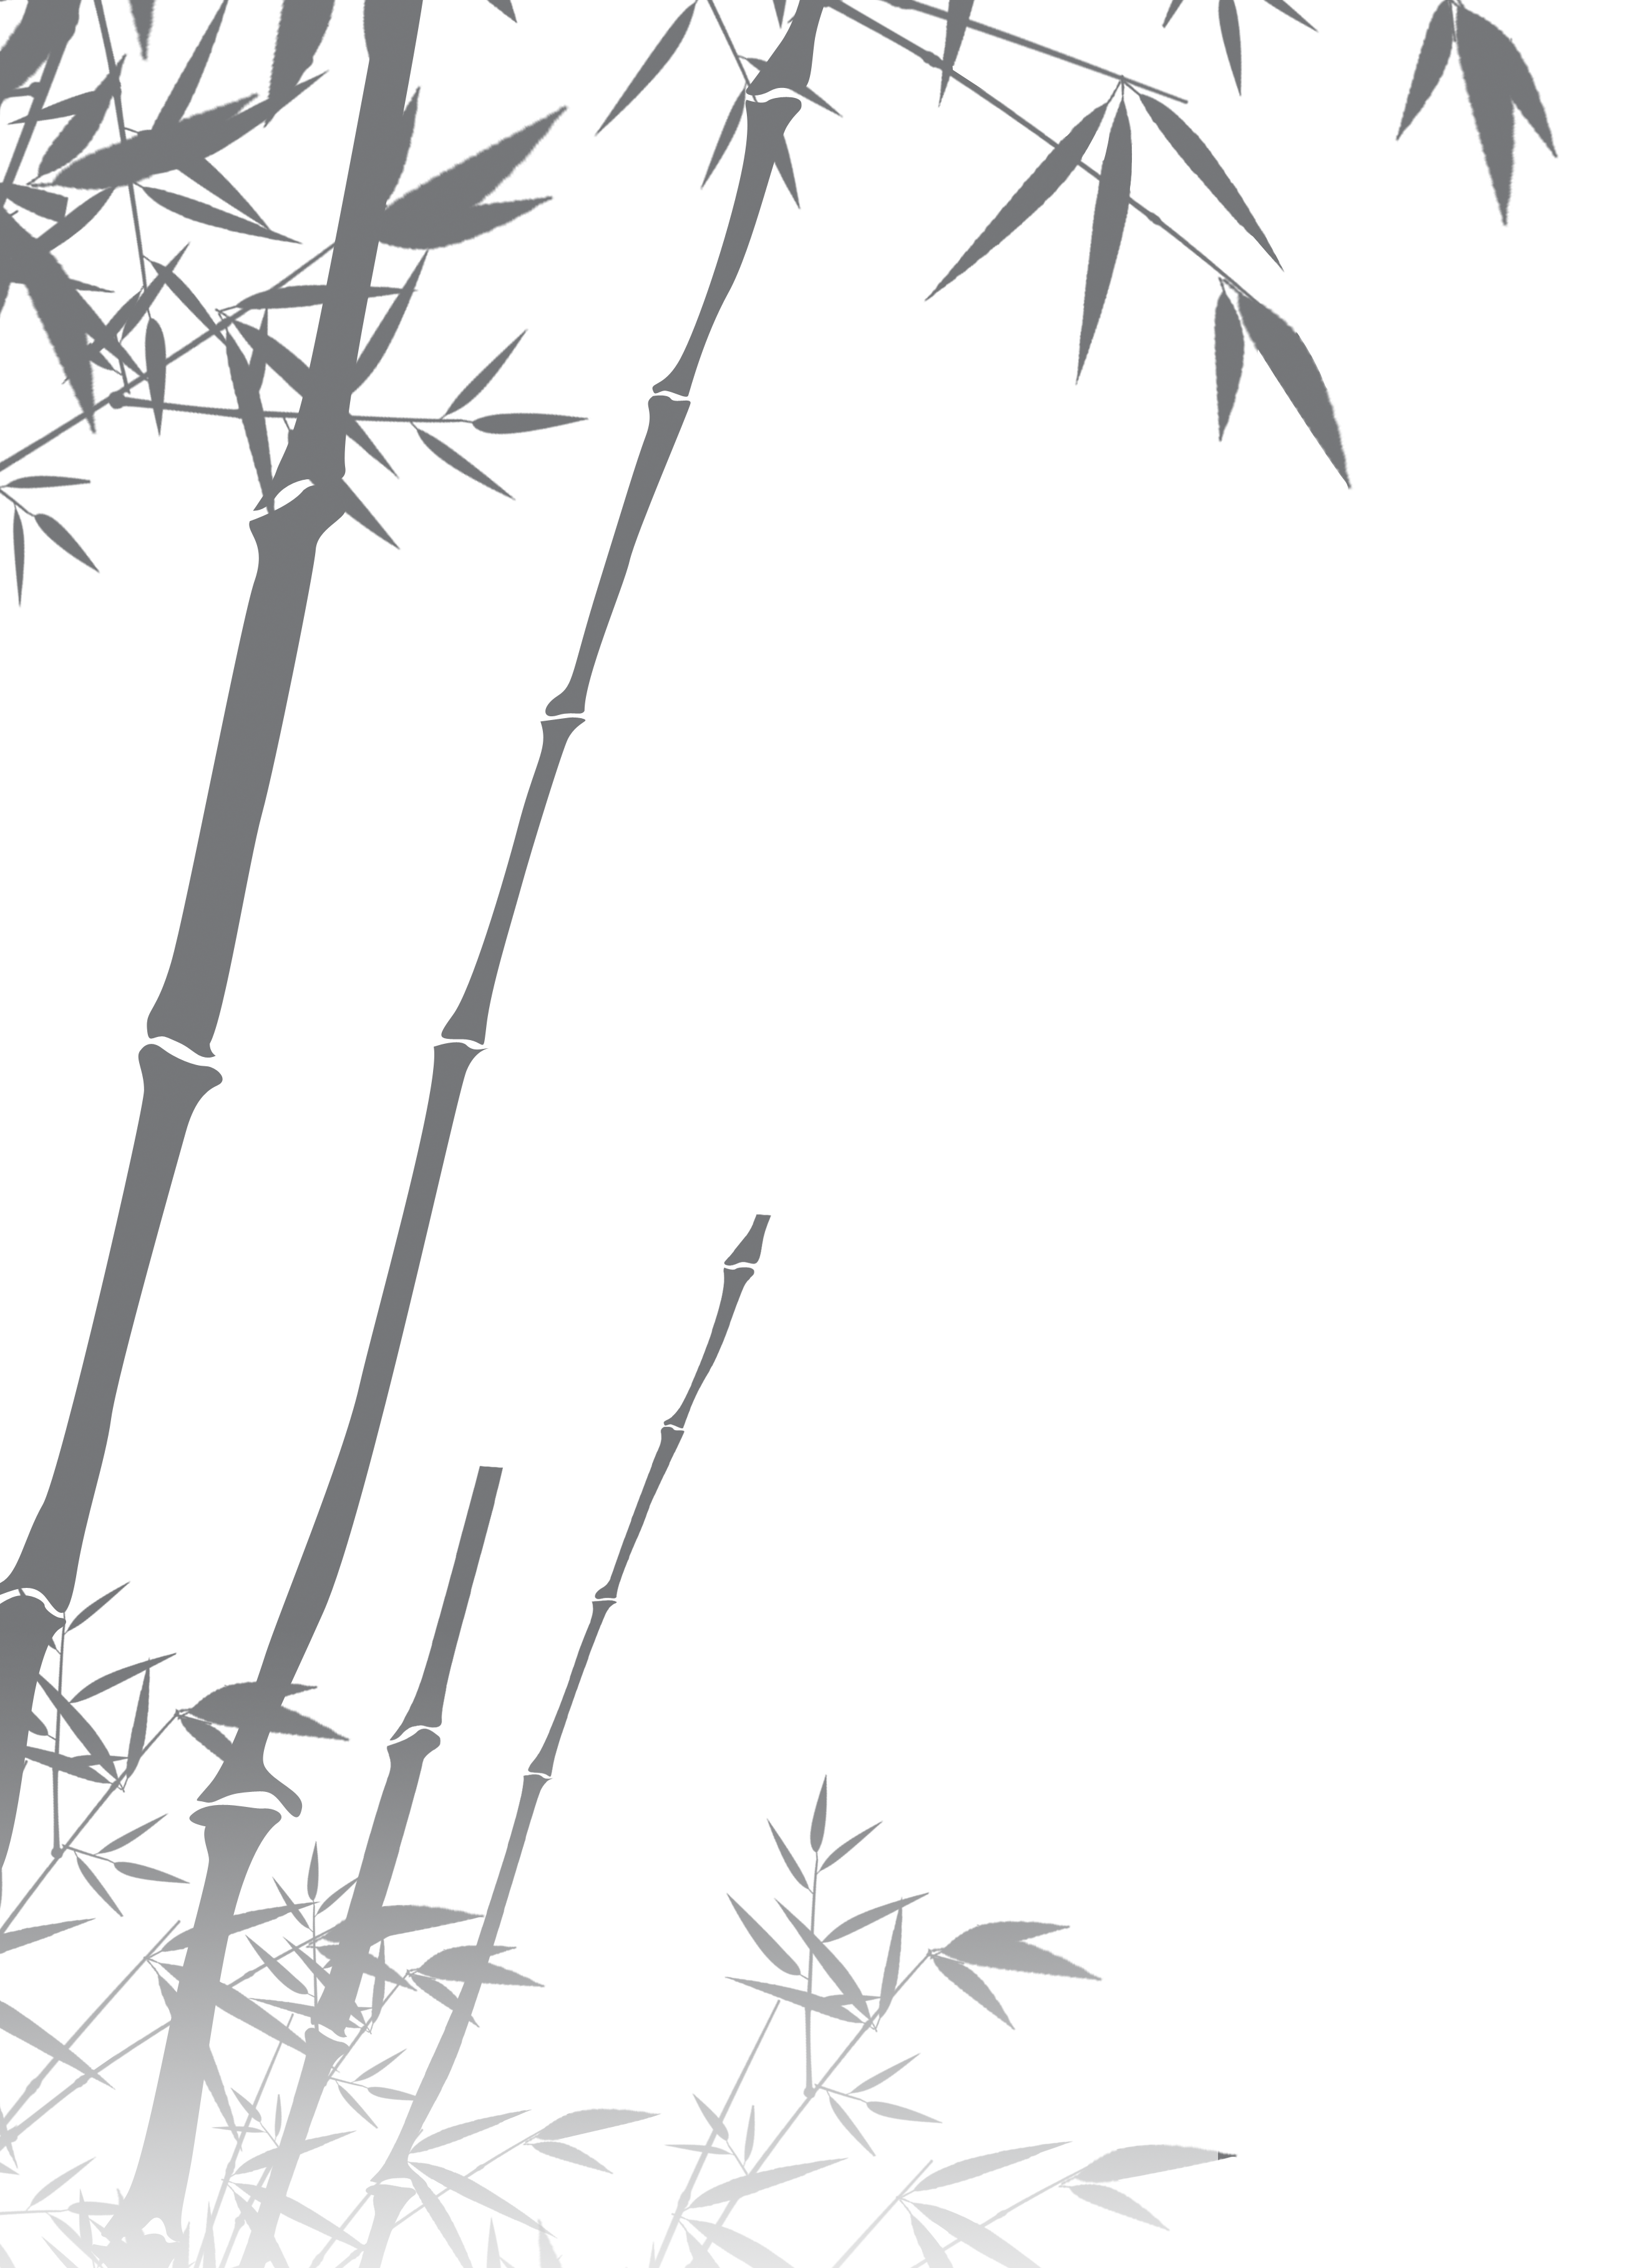 Bamboo silhouette png. Black and white transprent